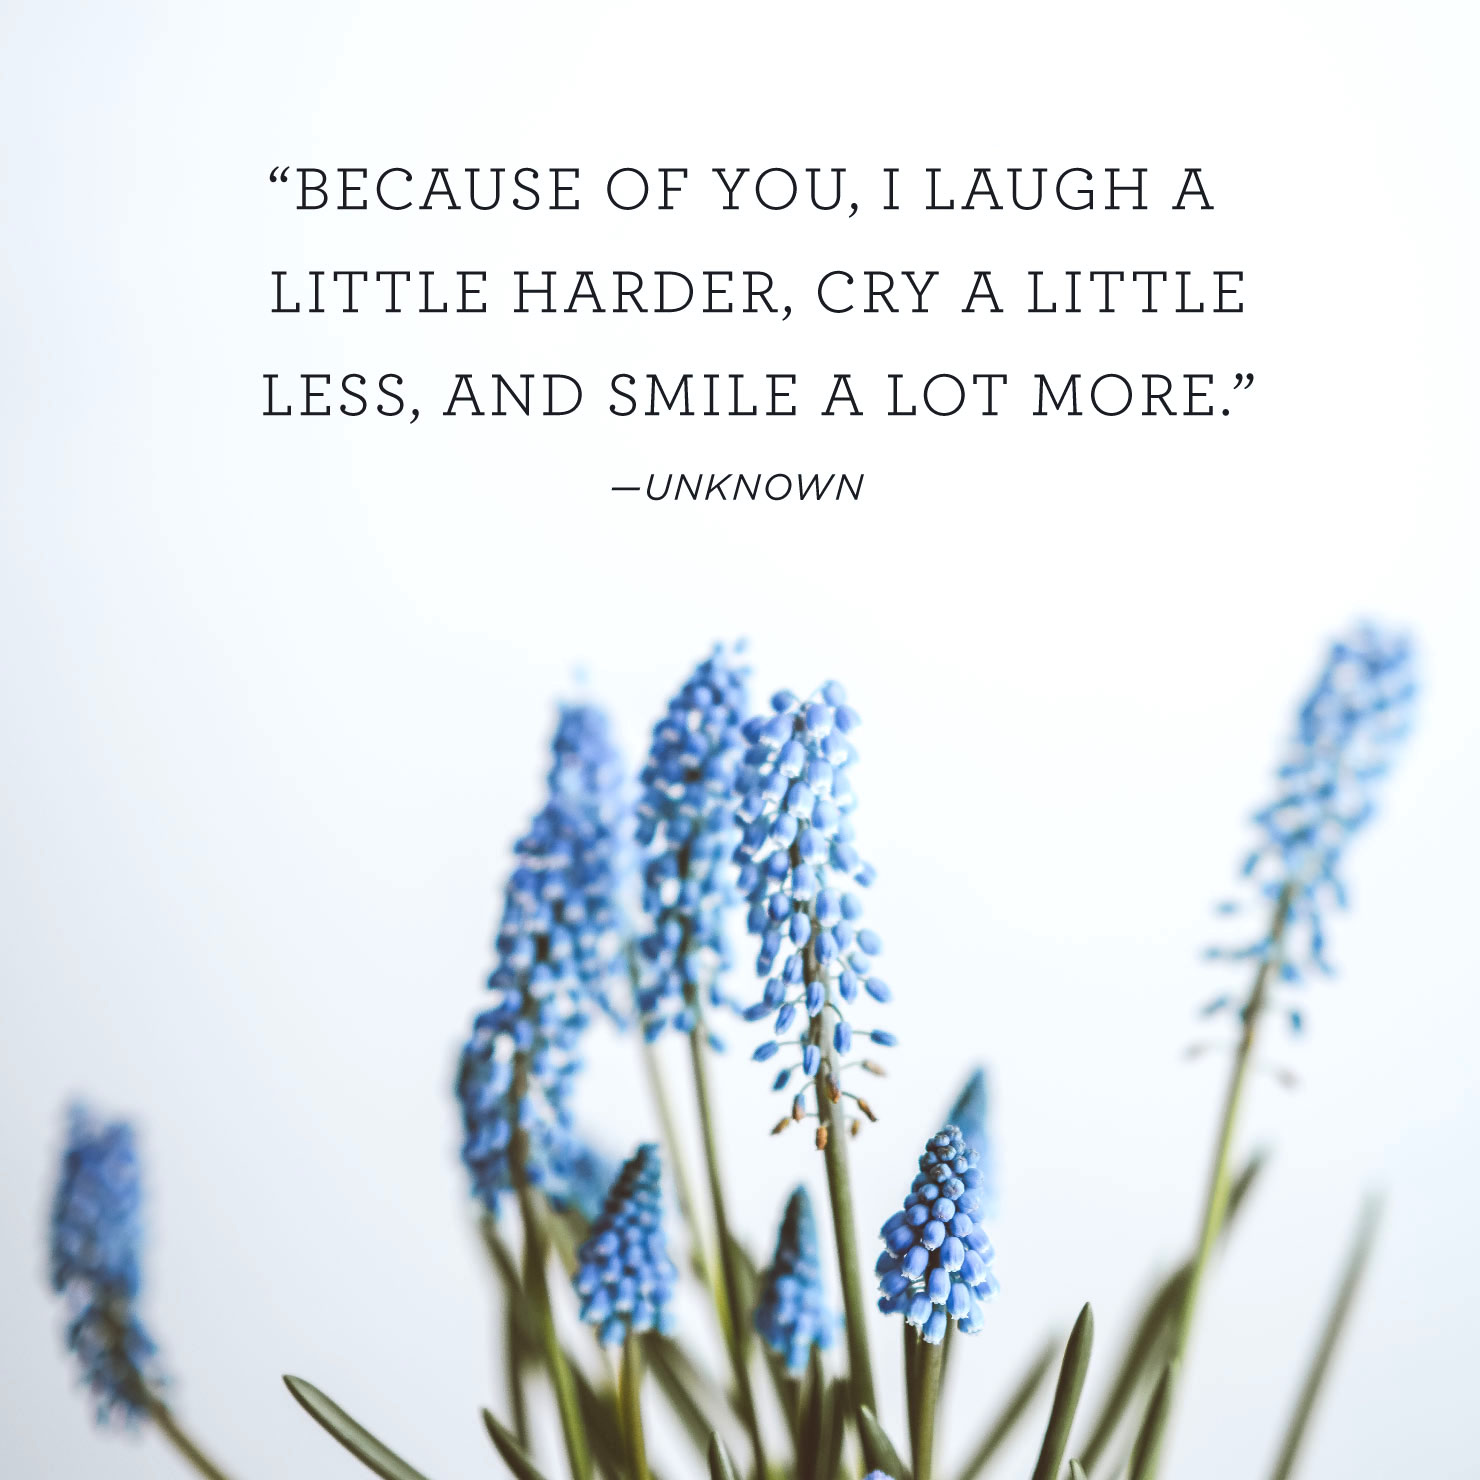 Quote above background image: 'Because of you, I laugh a little harder, cry a little less, and smile a lot more.' - Unknown